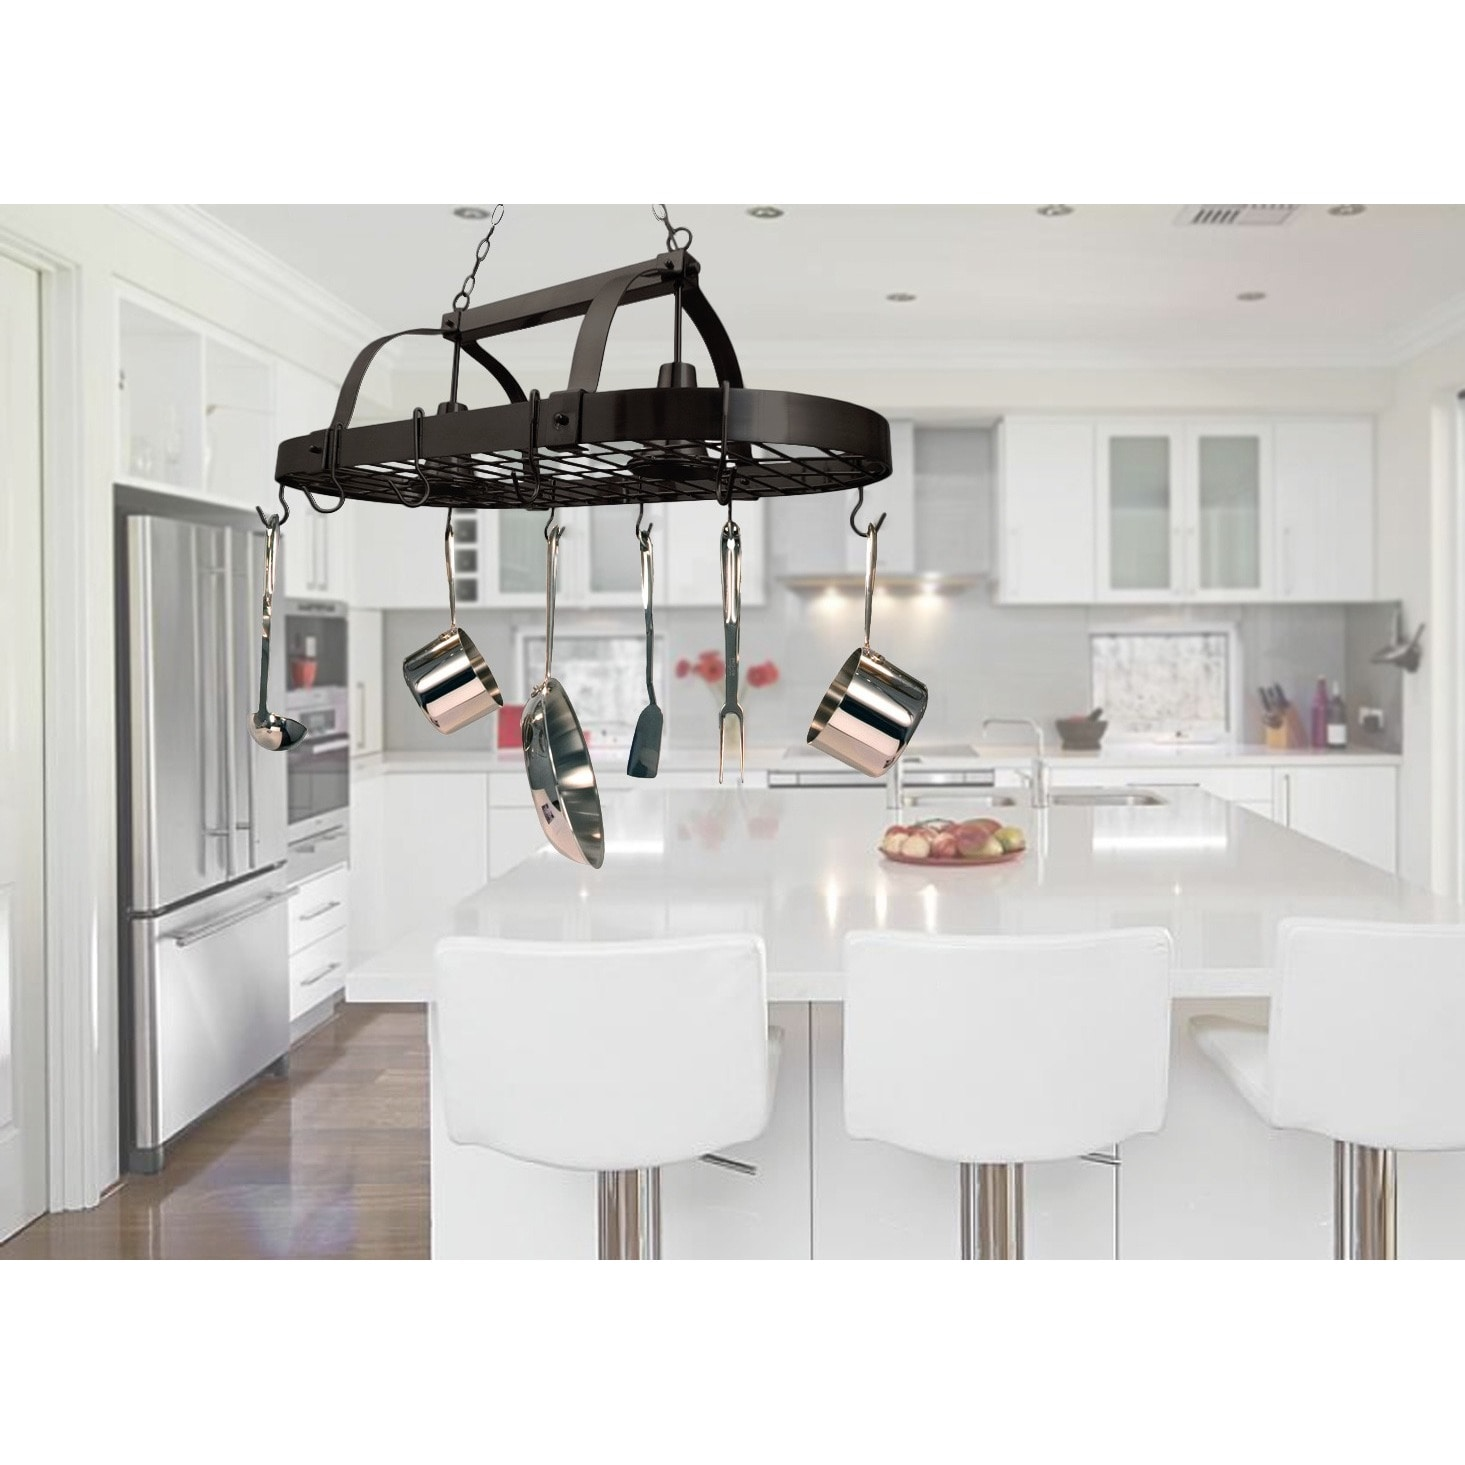 Shop elegant designs home collection 2 light kitchen pot rack free shipping today overstock com 9929978